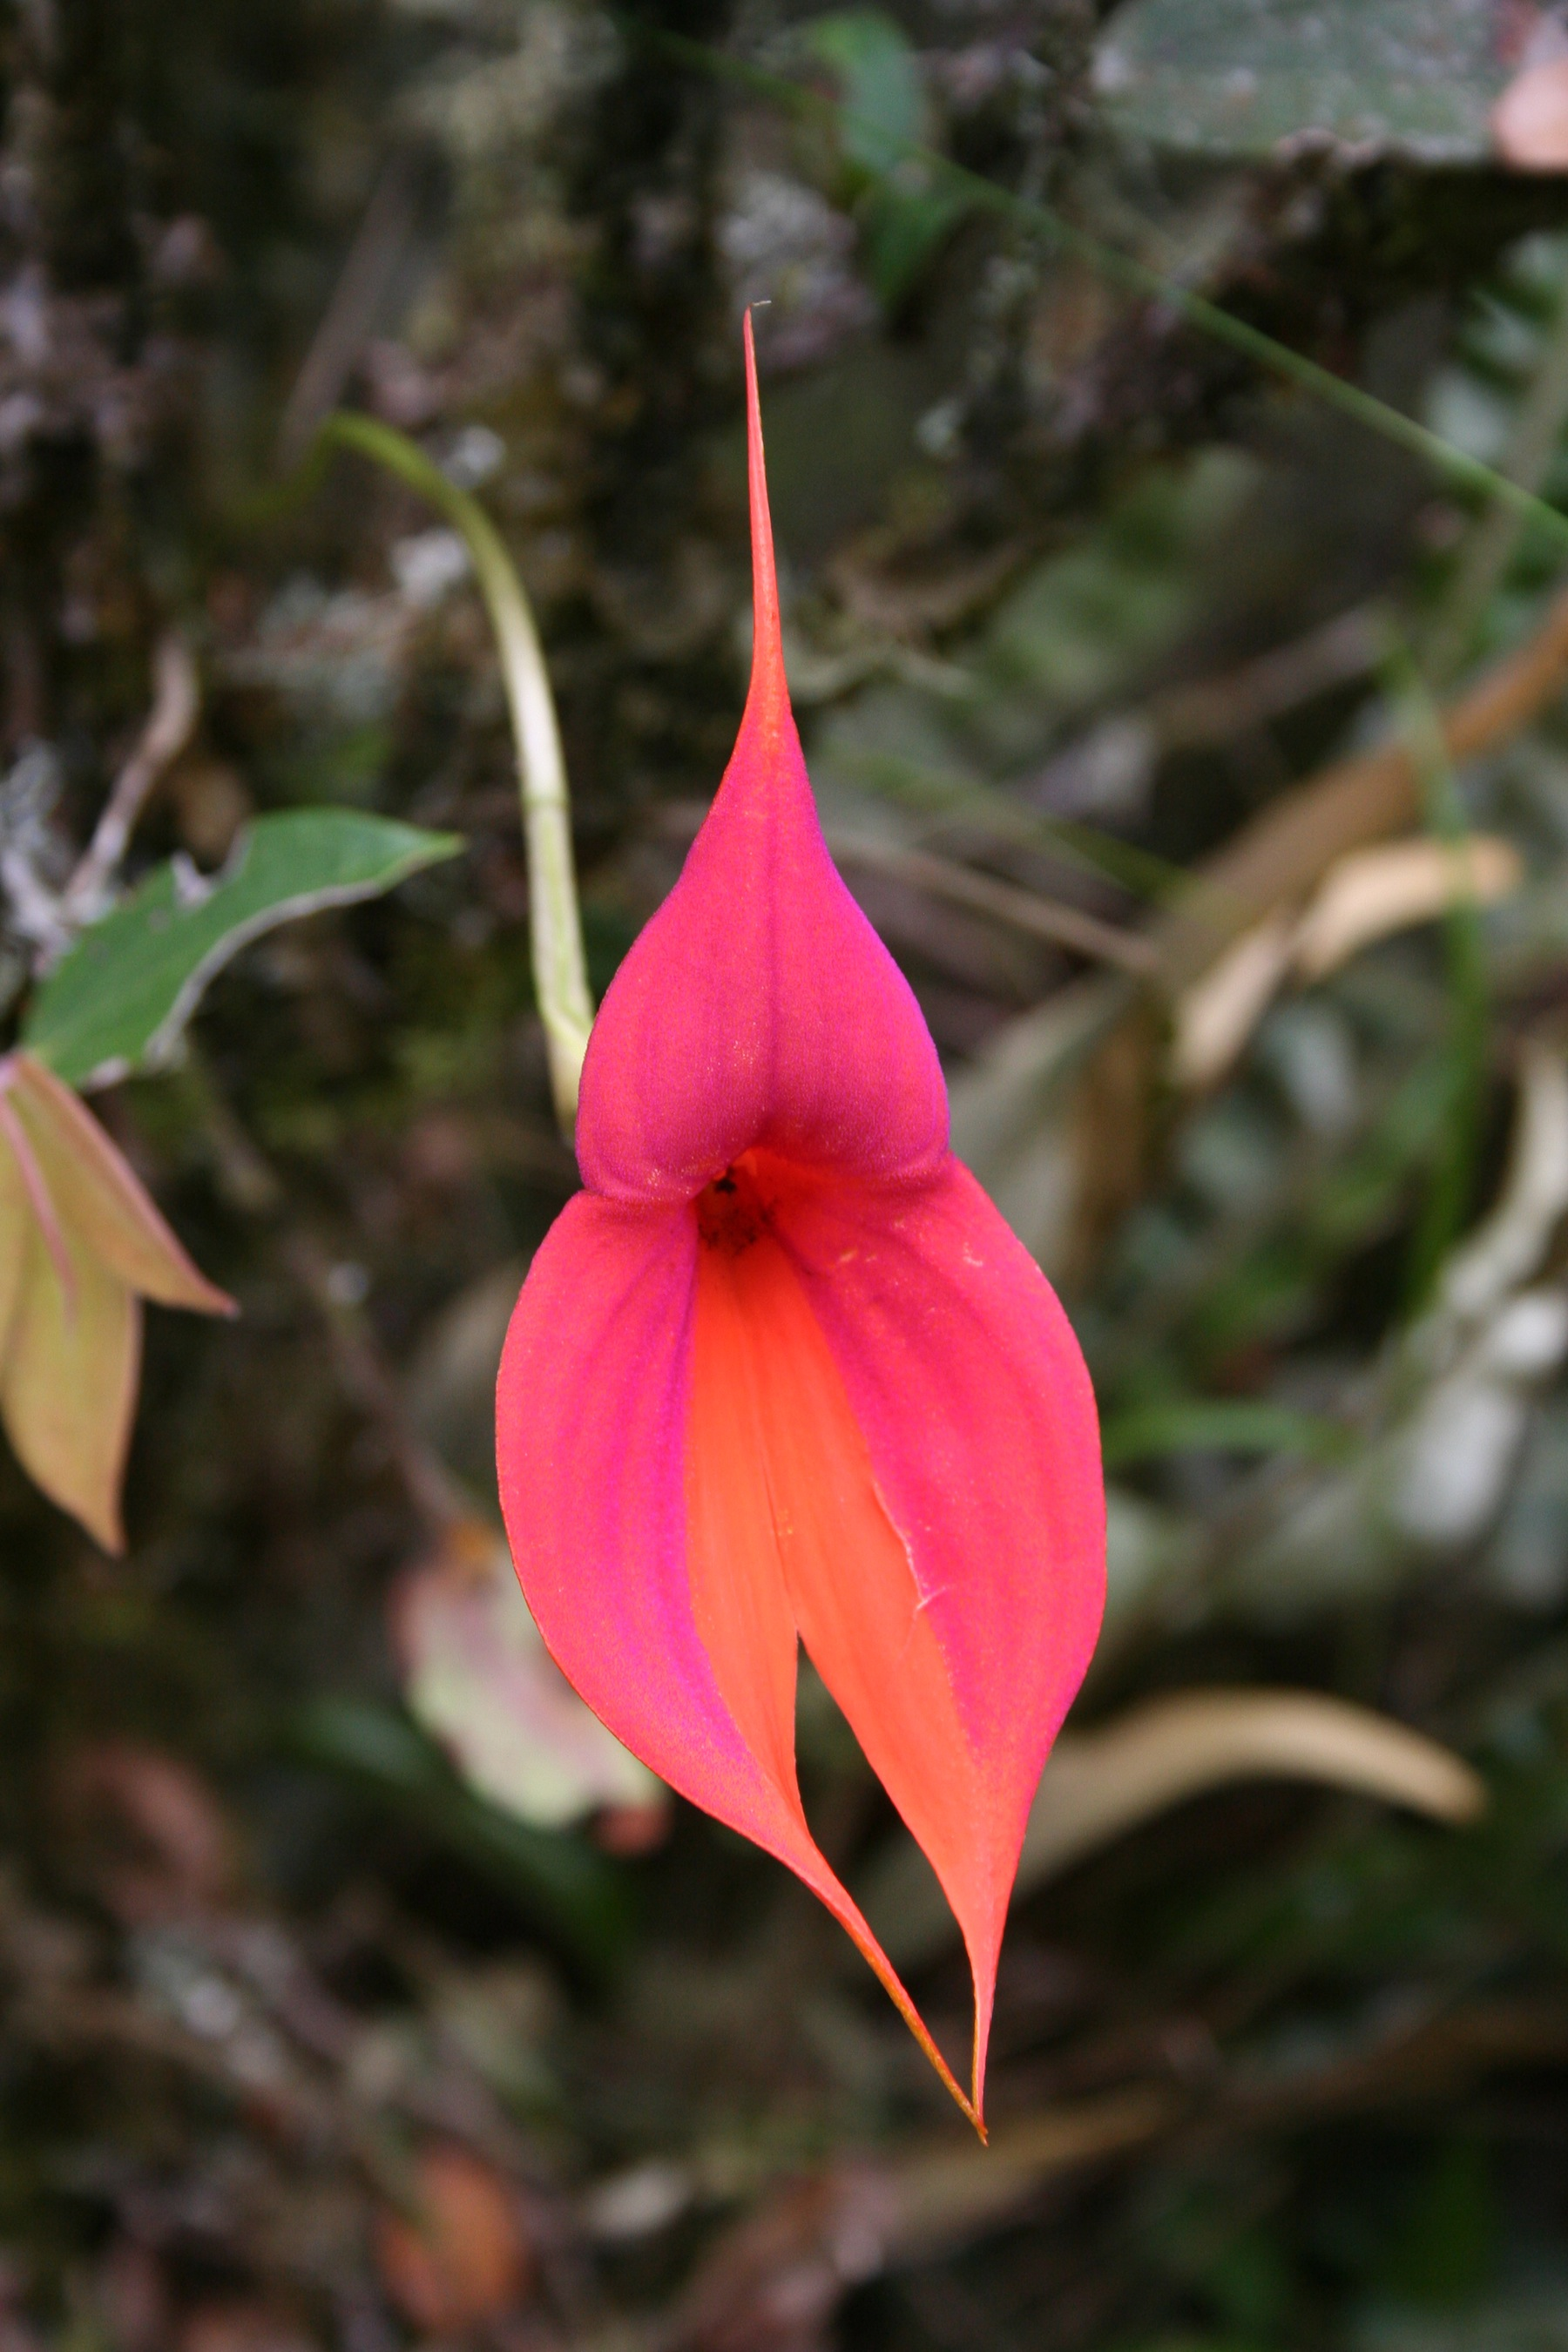 Divorce Orchid (aka Fire Orchid or Masdevallia veitchiana) in Peru